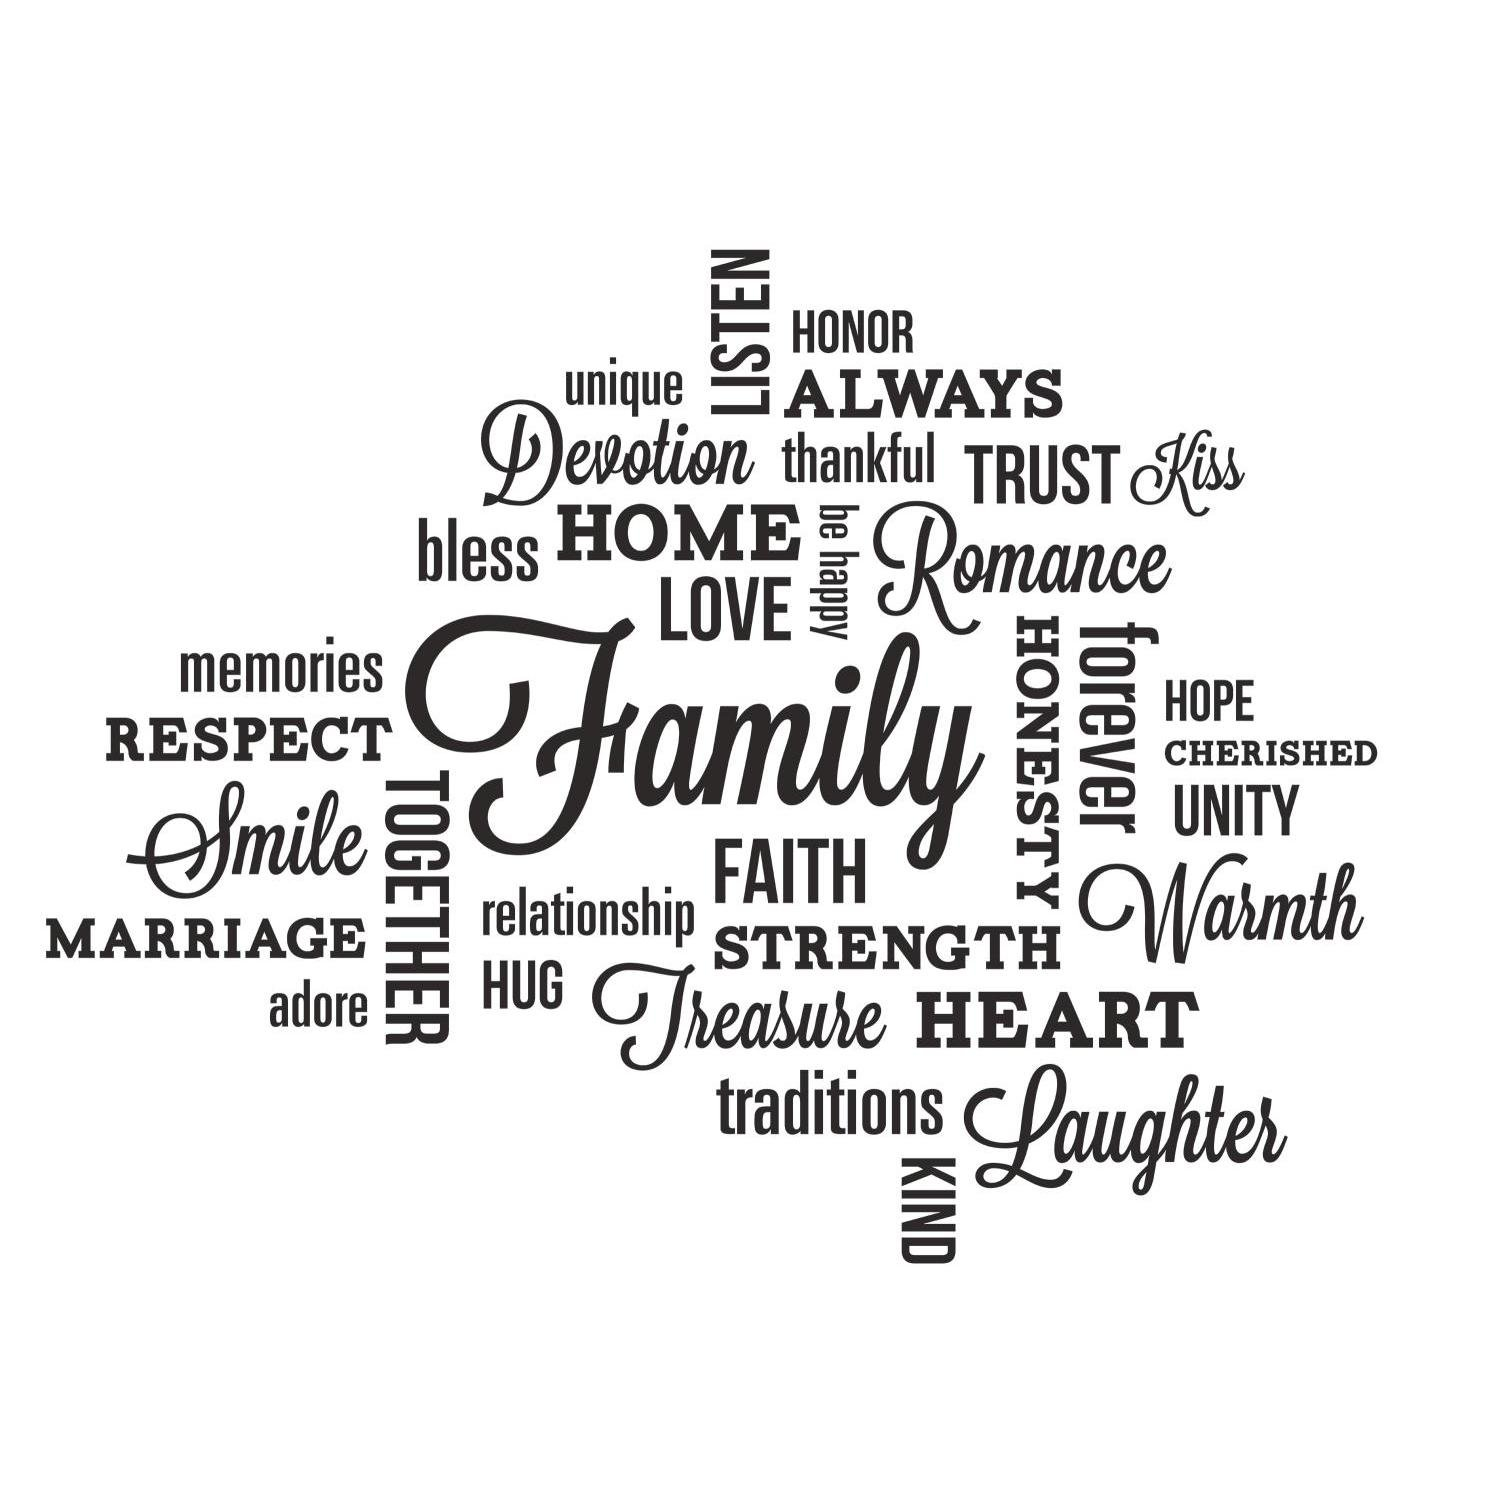 roommates rmk2741scs family quote peel and stick wall decals roommates rmk2741scs family quote peel and stick wall decals amazon com